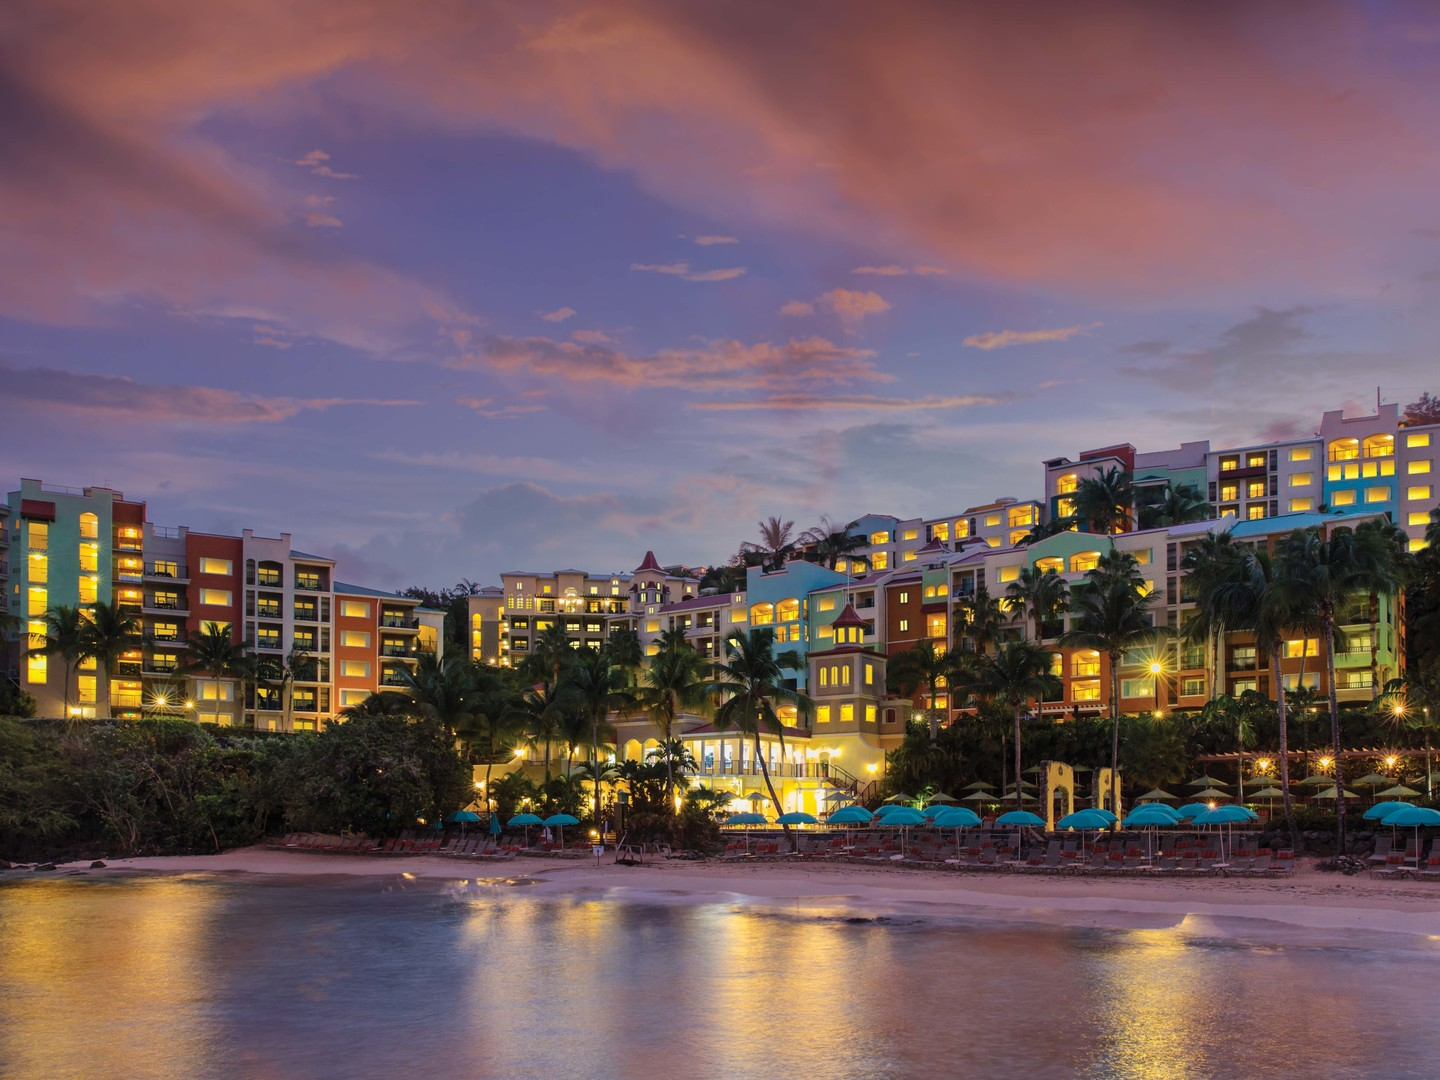 Marriott's Frenchman's Cove Resort View from Bay. Marriott's Frenchman's Cove is located in St. Thomas, US Virgin Islands United States.